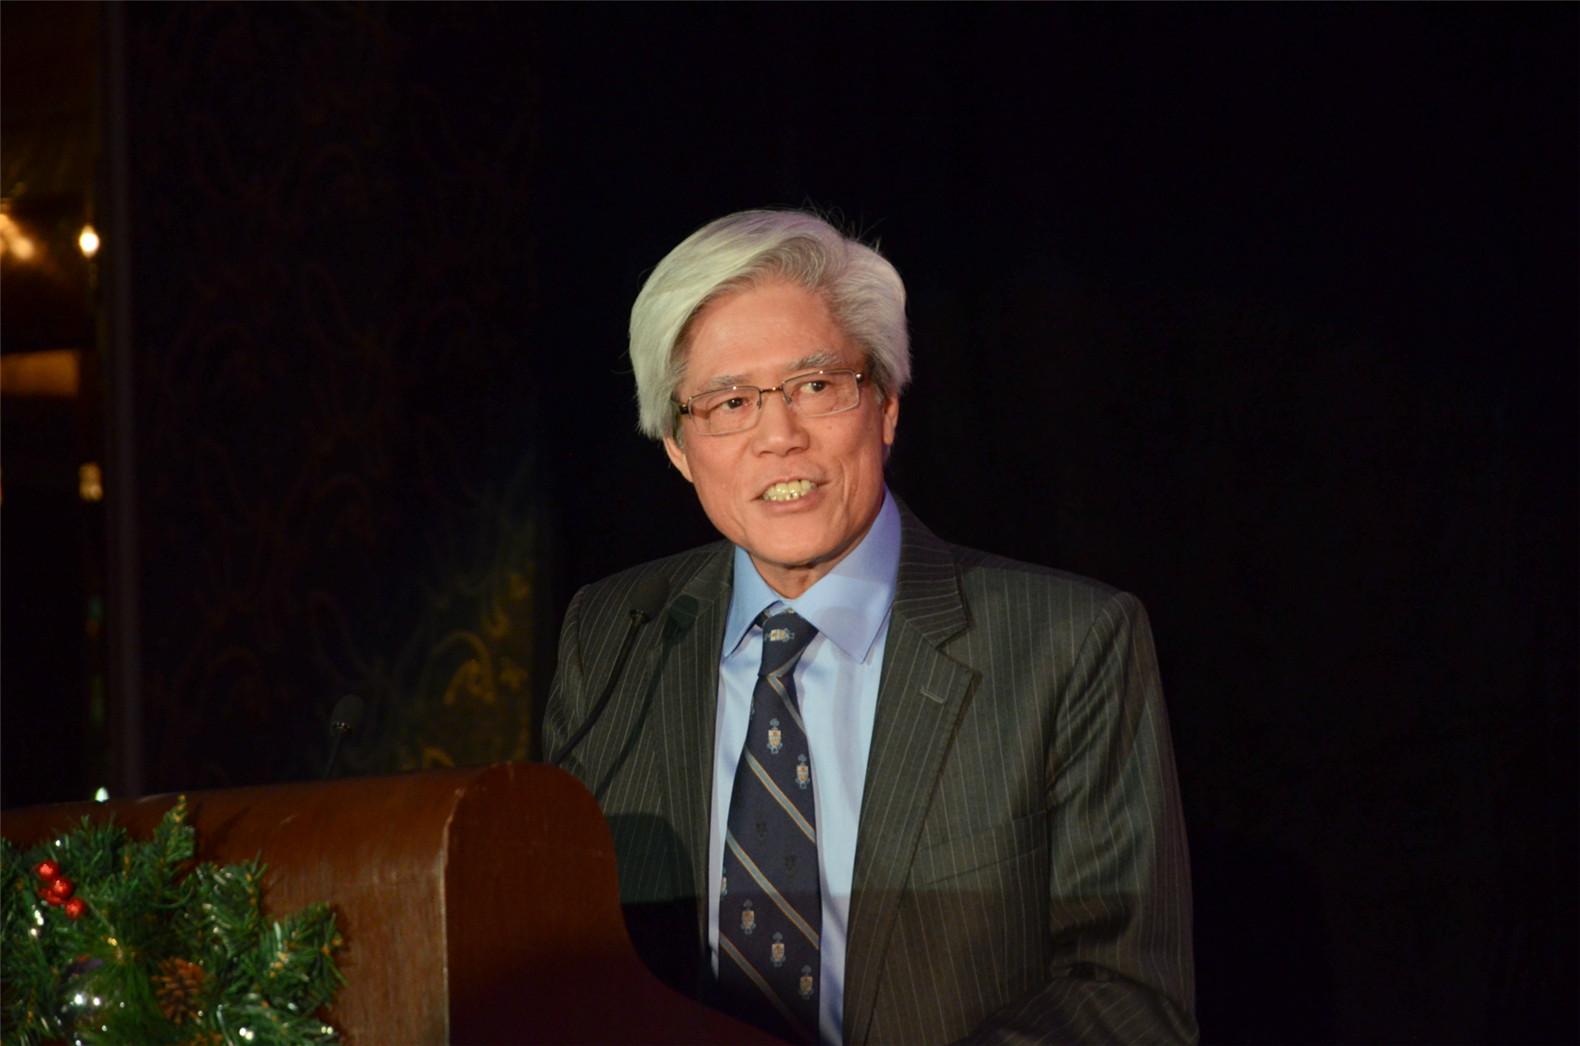 cpac gala raises funds and celebrates immigrant success 2015 cpac professional achievement award winner dr kue young delivers a speech at gala